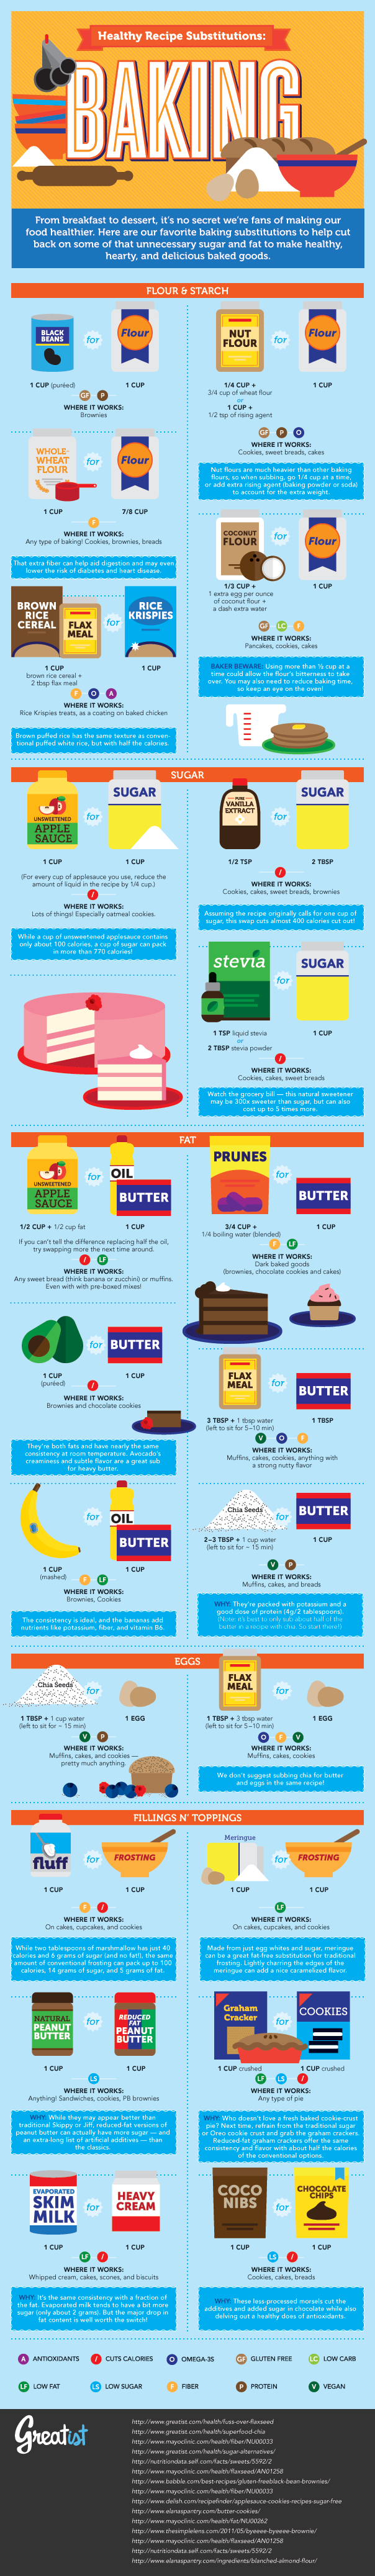 healthy baking substitutions infographic